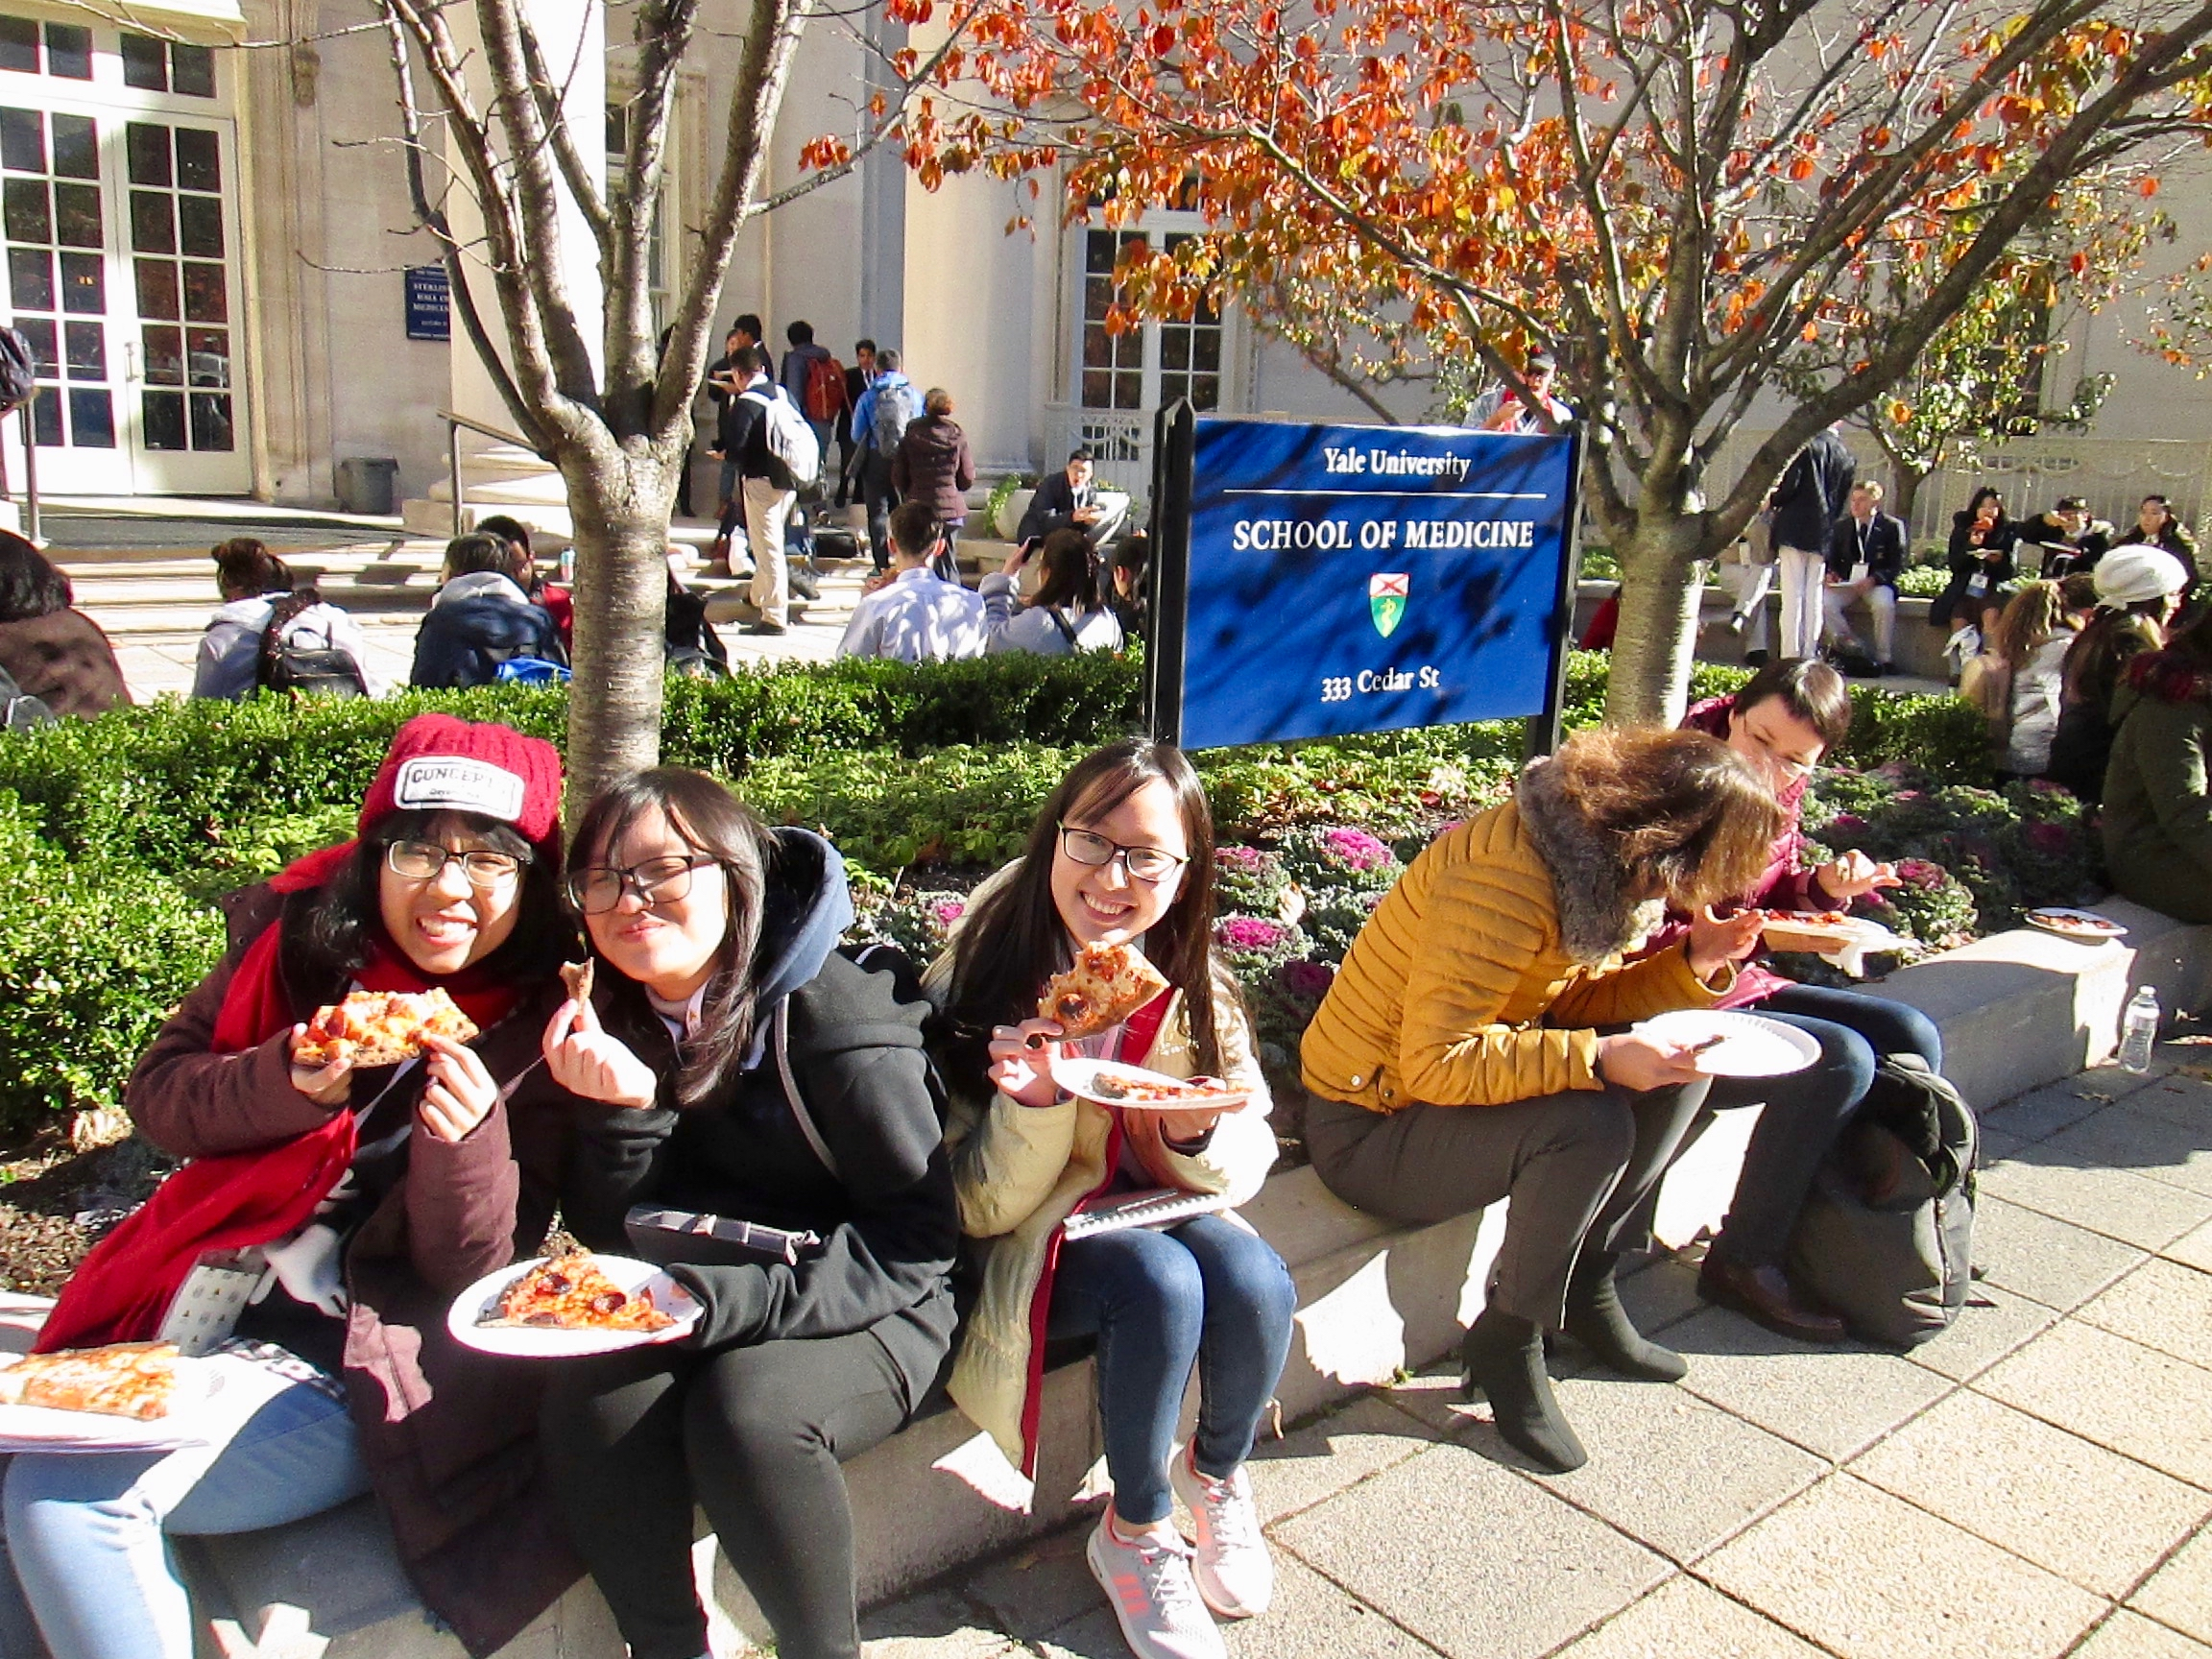 Pizza at Yale.jpg